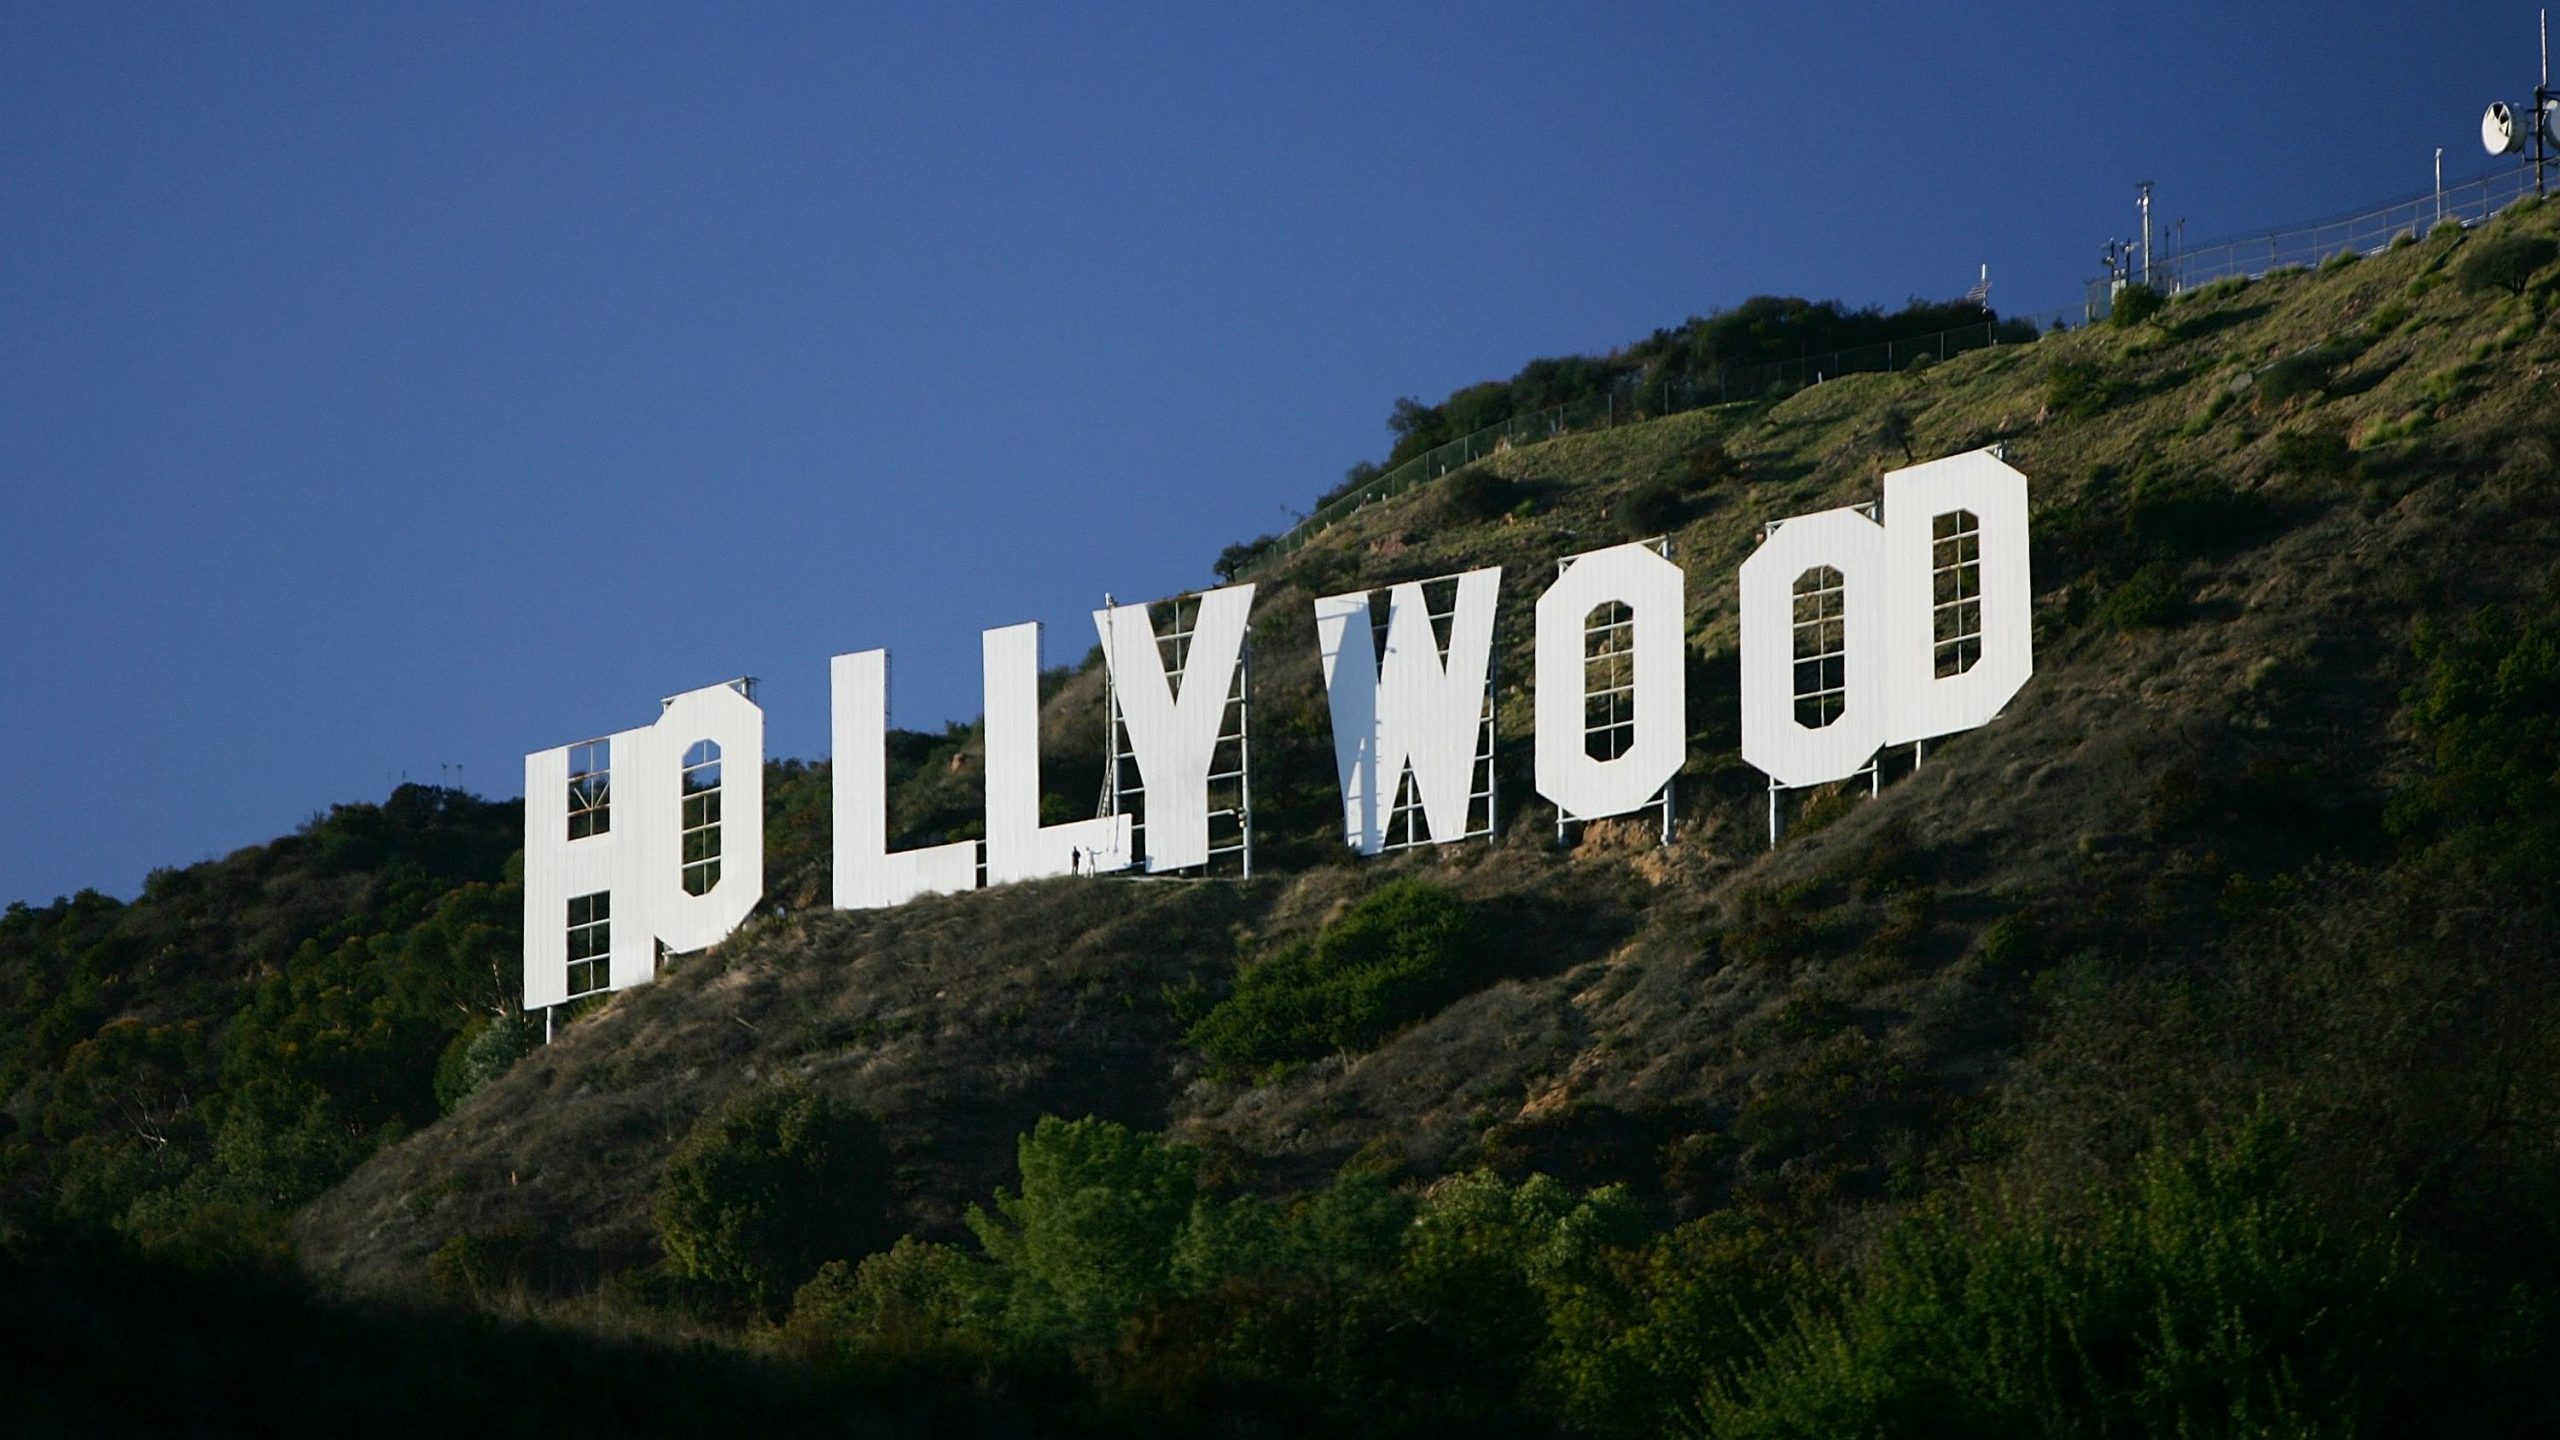 The Hollywood Sign is seen on Nov. 16, 2005, in Los Angeles, California. (Credit: David McNew/Getty Images)